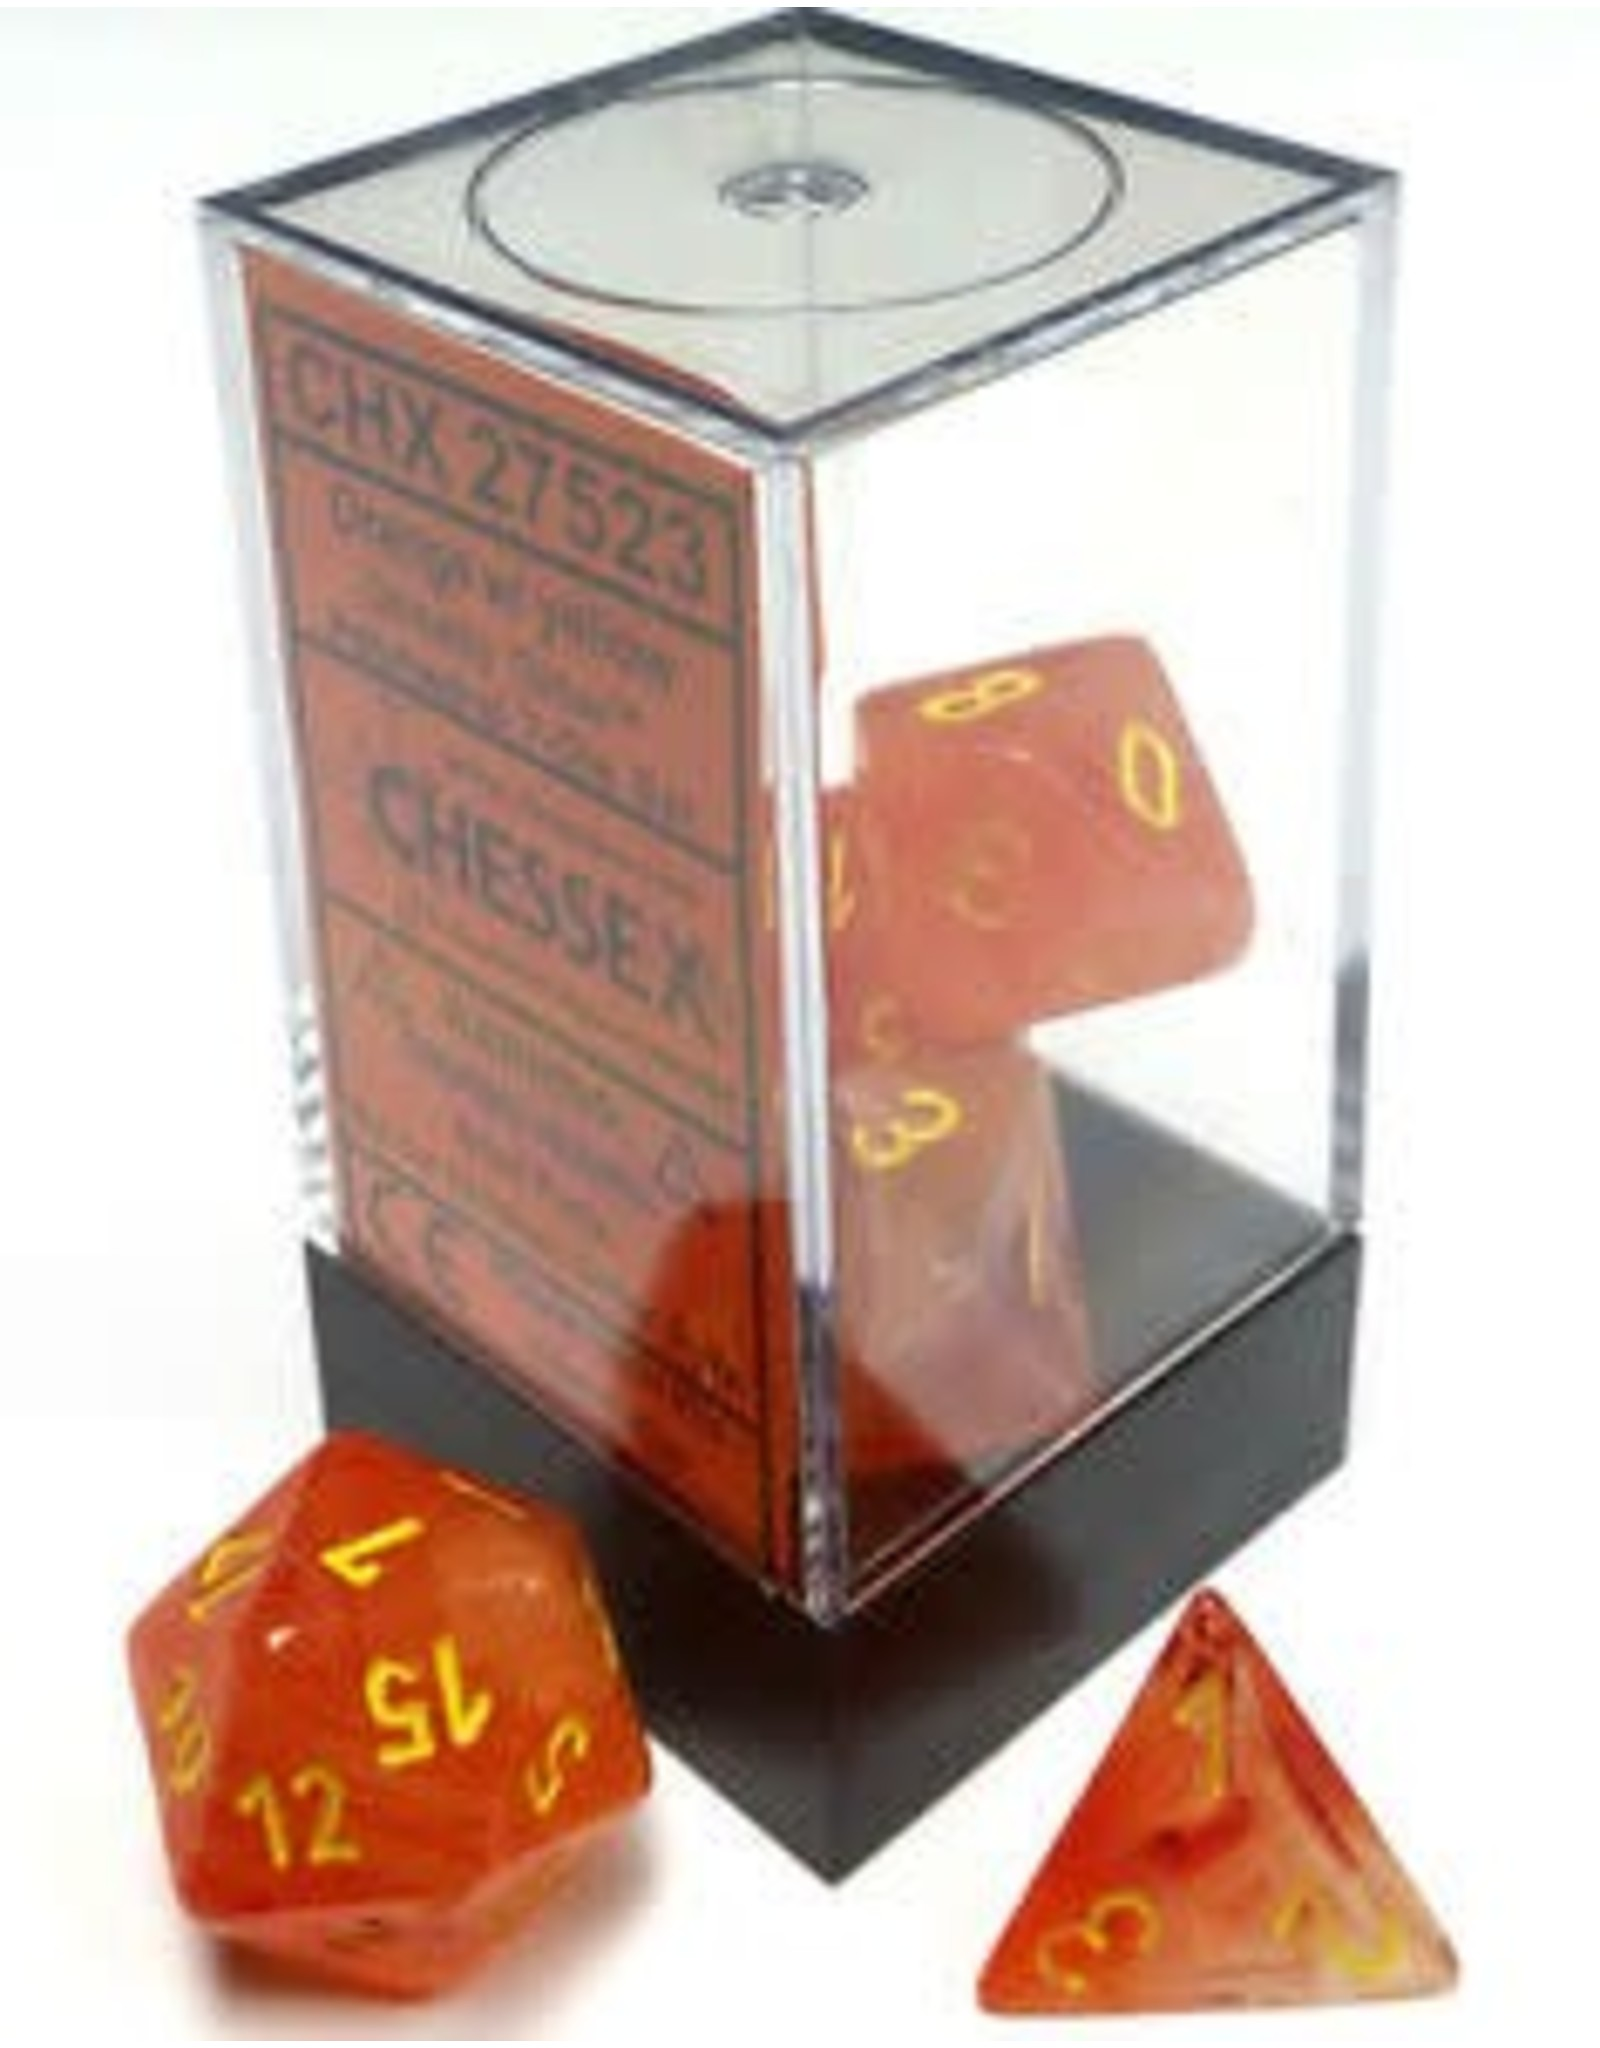 CHESSEX CHX 27523 7 PC POLY DICE SET ORANGE YELLOW GHOSTLY GLOW